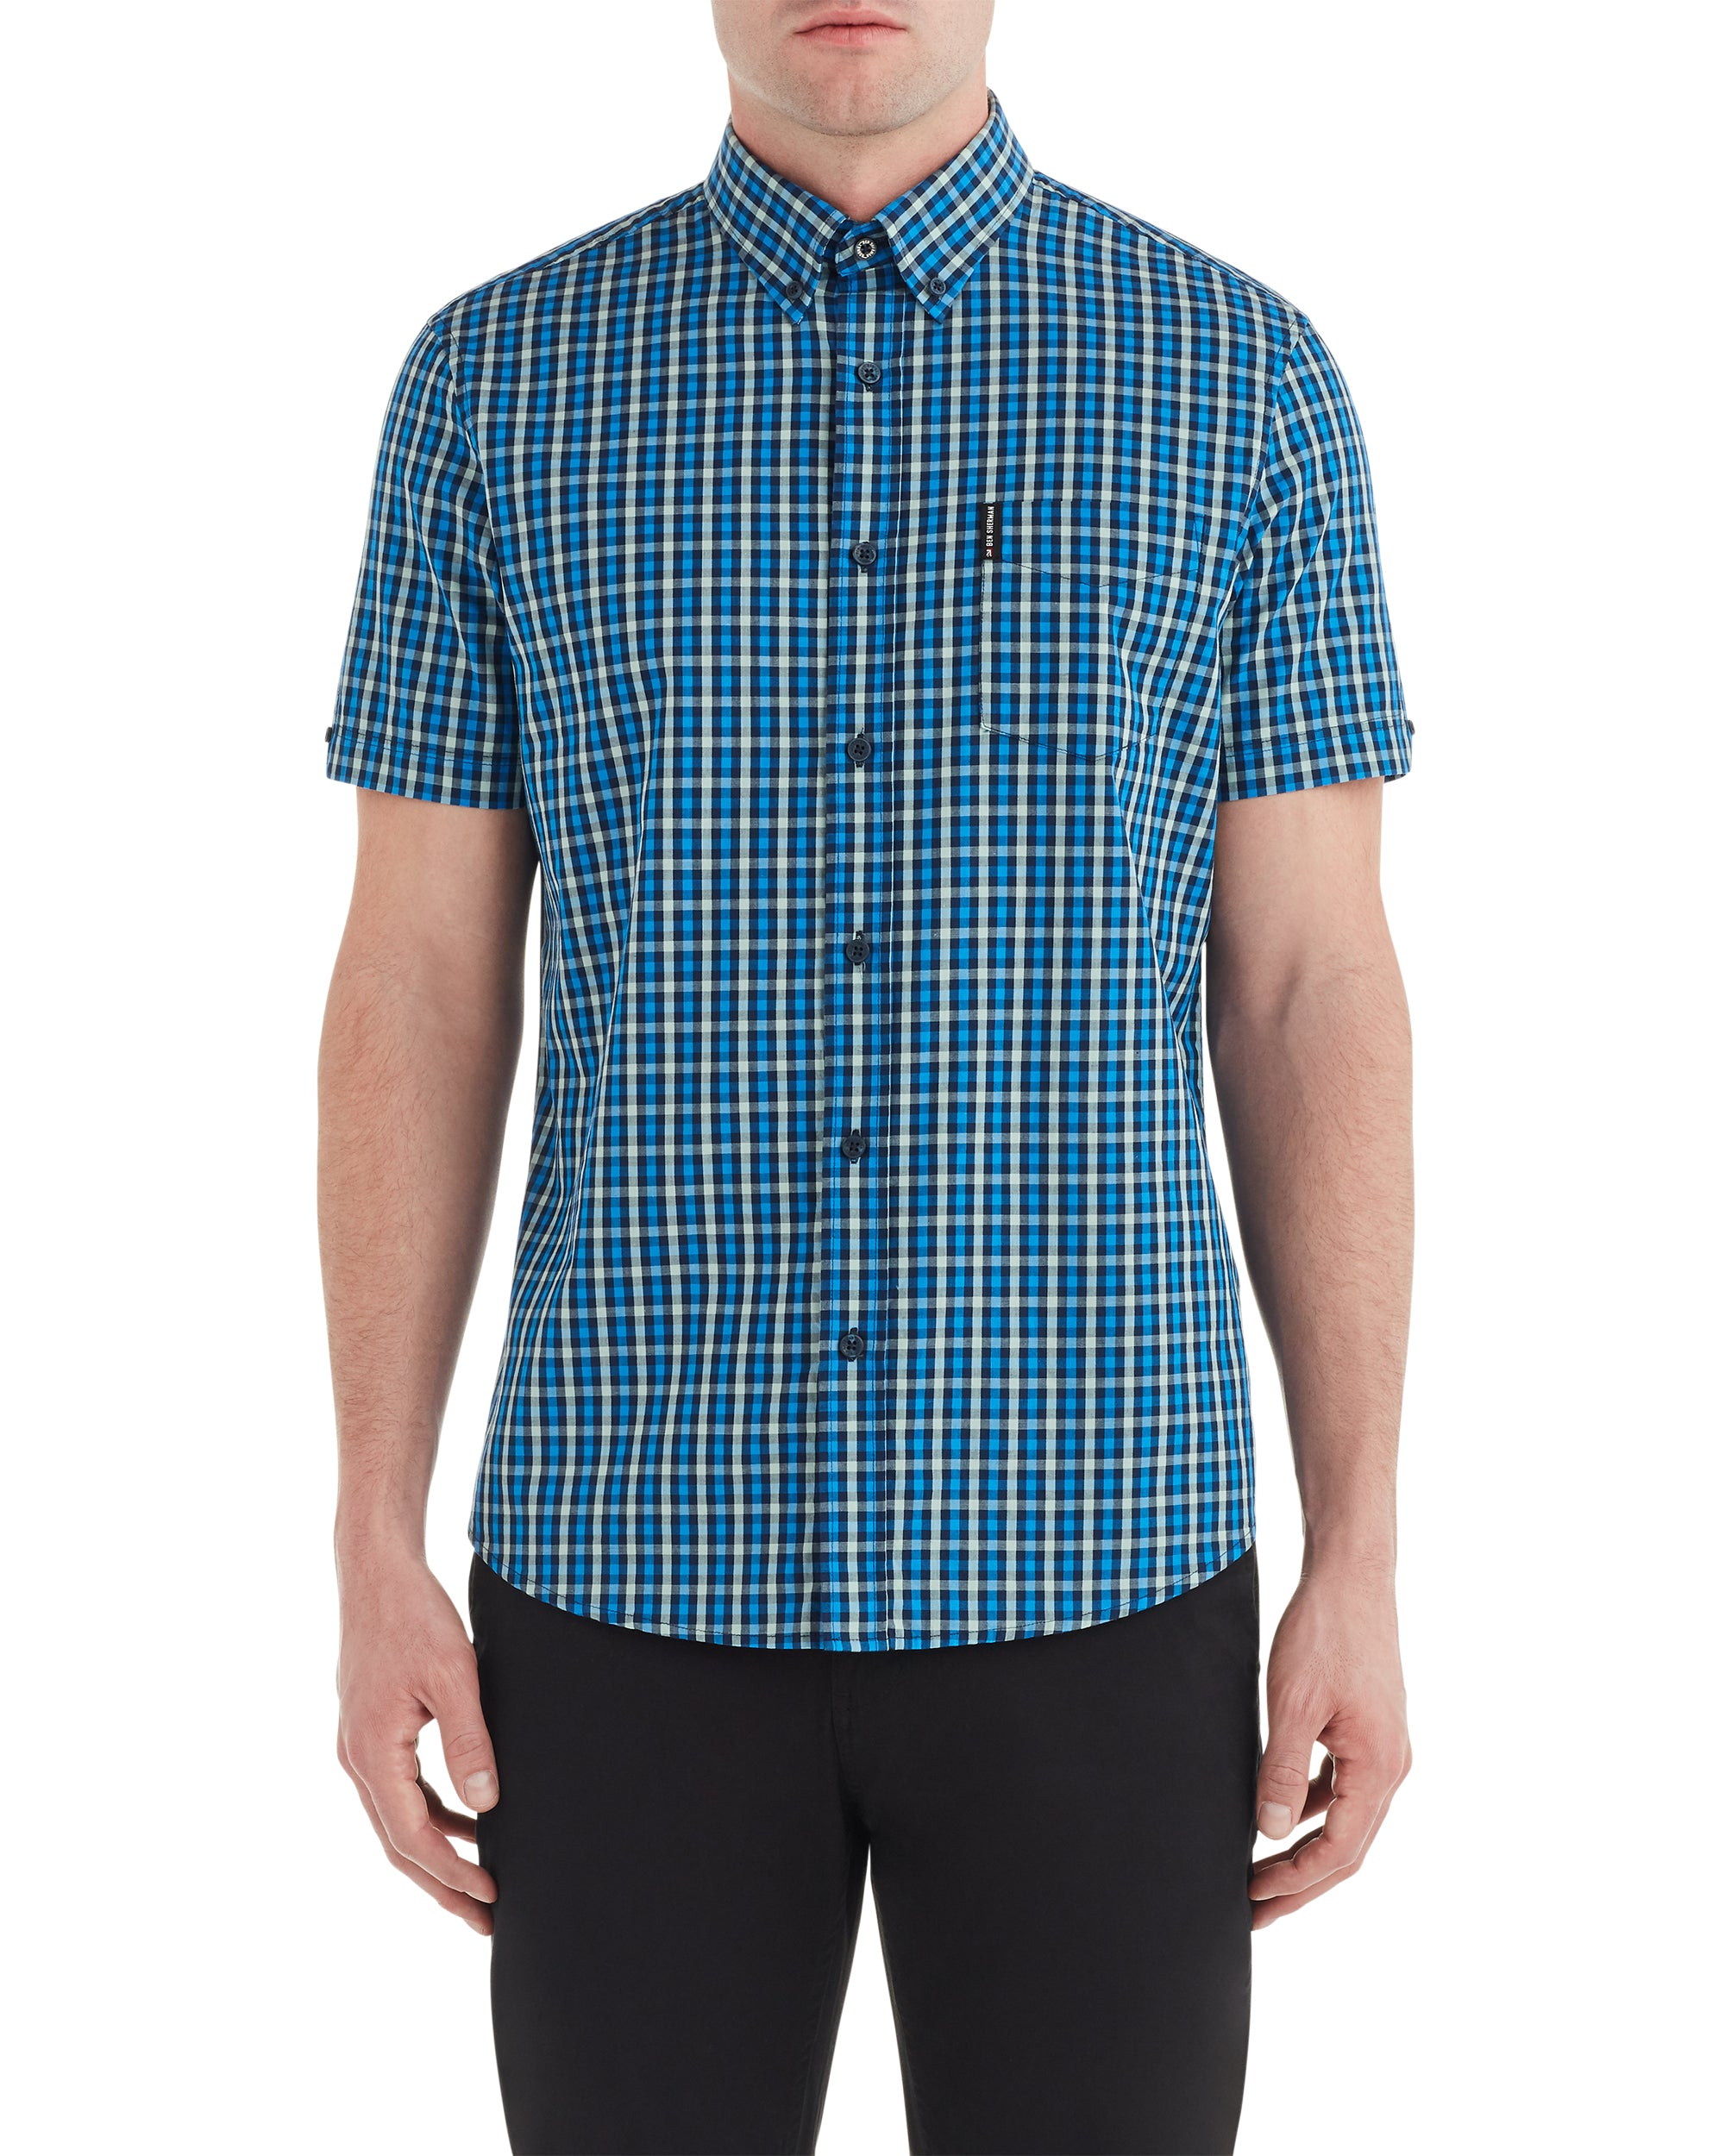 Short-Sleeve House Gingham Shirt - Marine